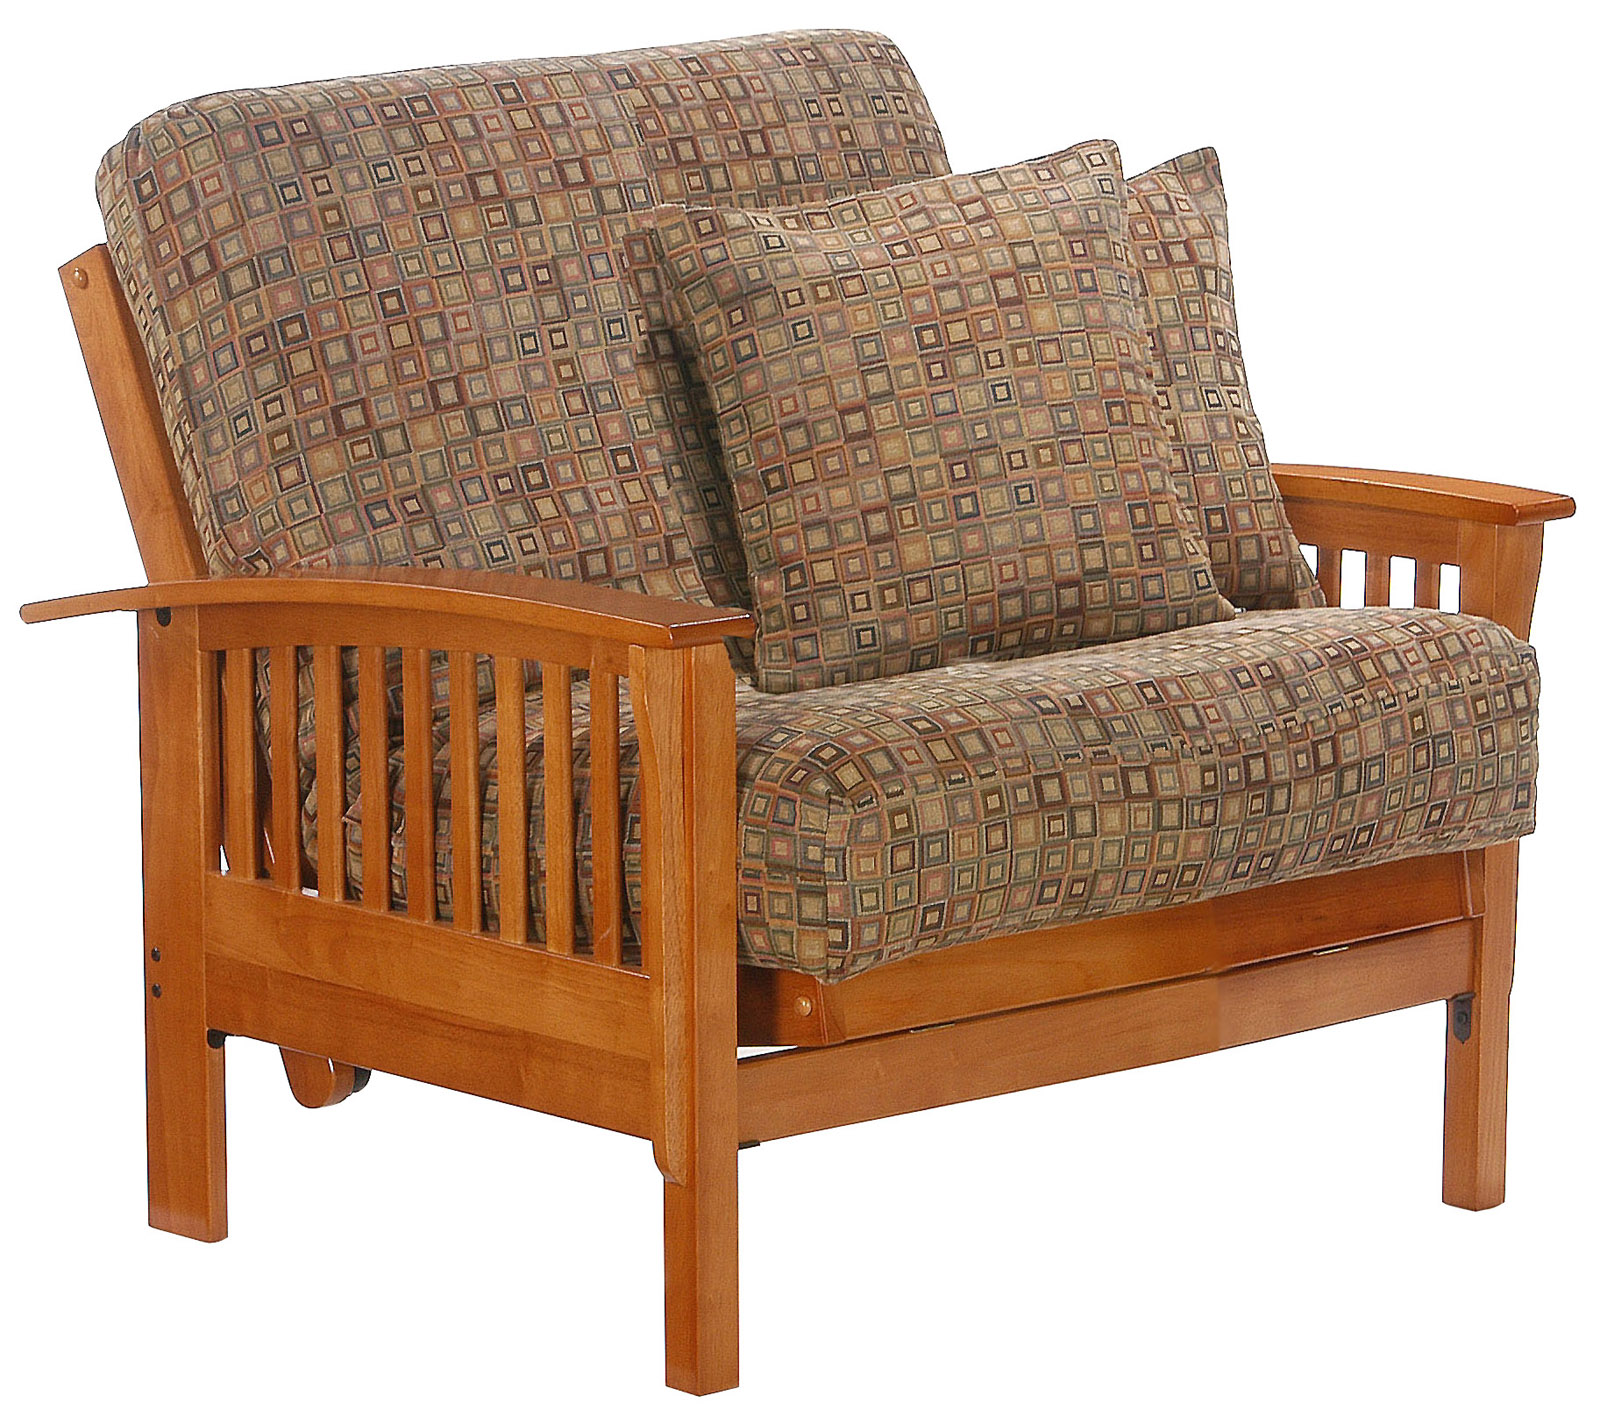 Ordinaire Twin Futon Chair | The Best Chair Review Blog